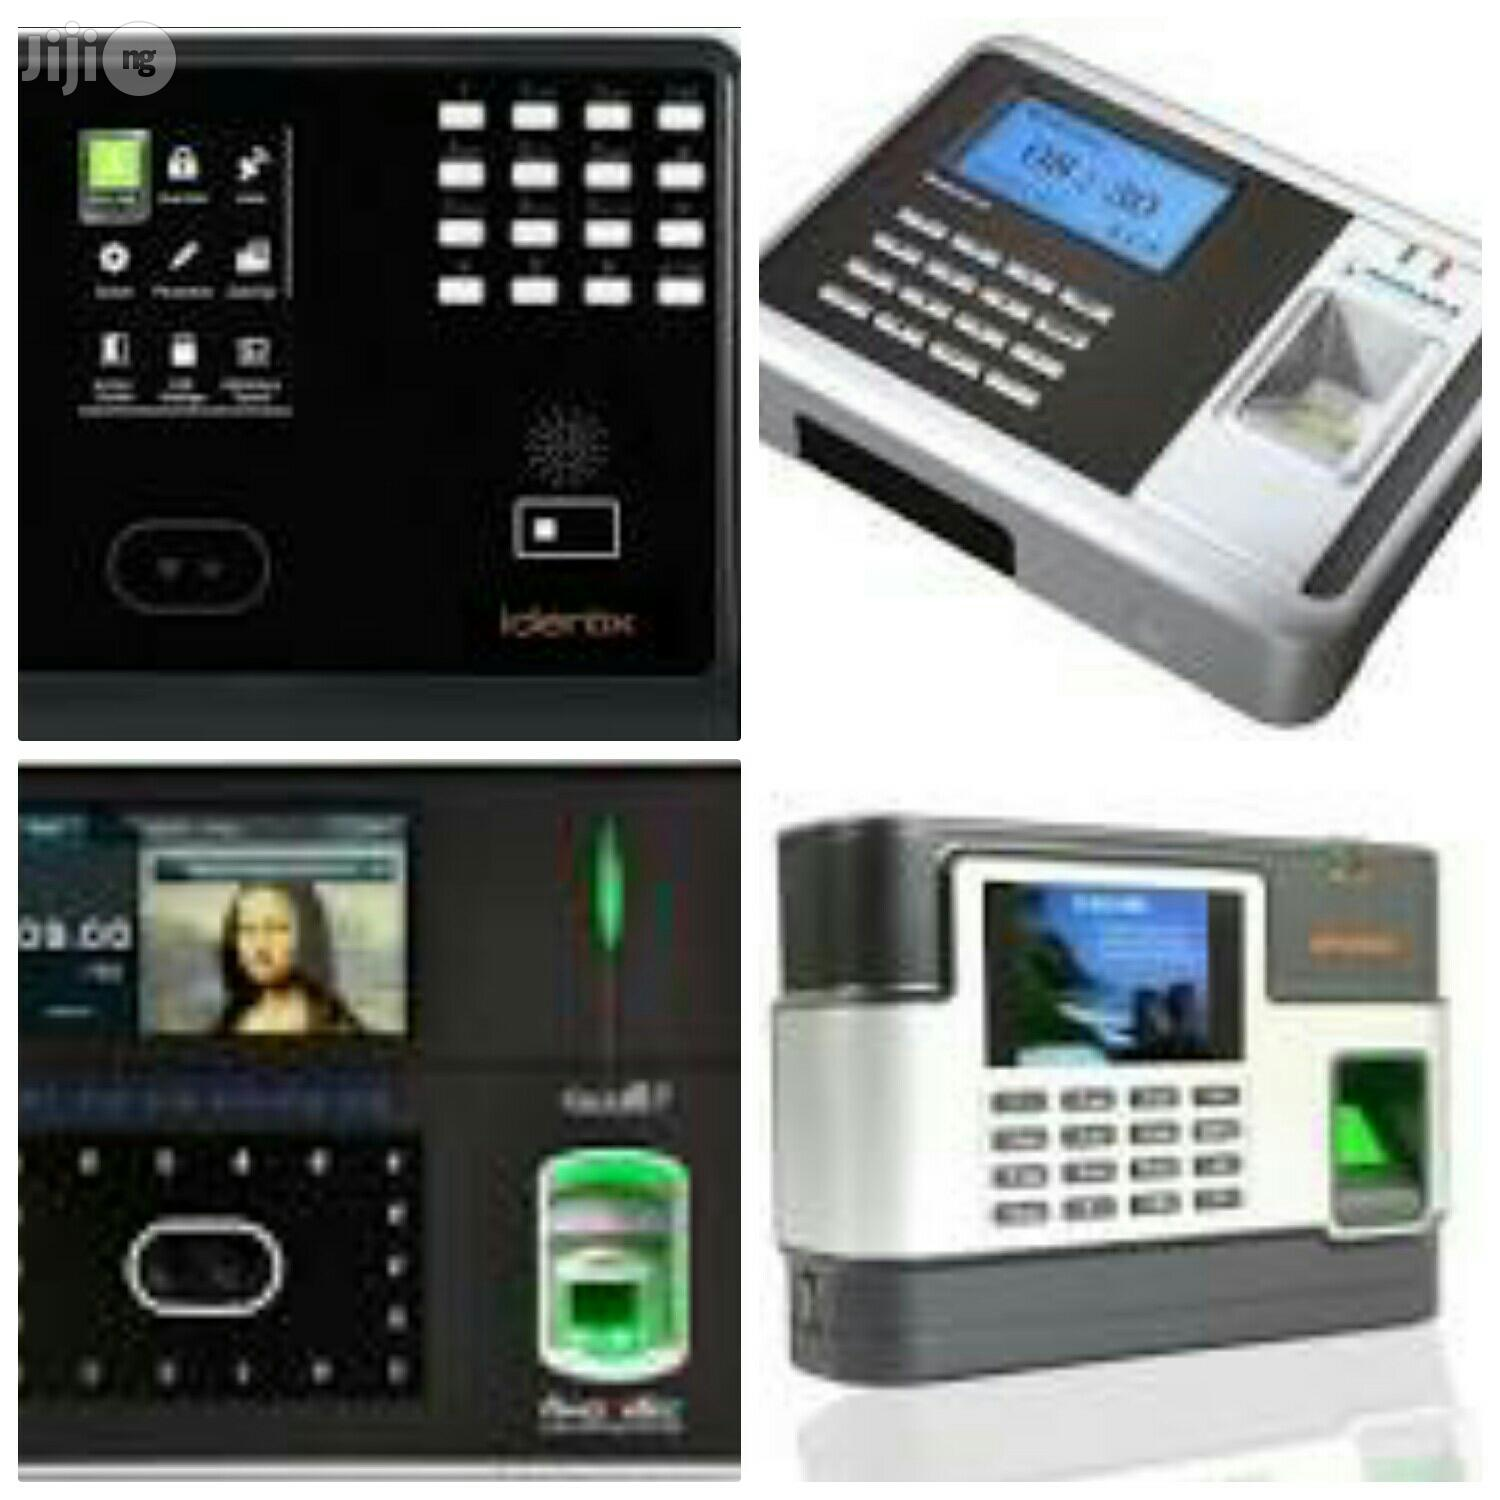 Access Control / Biometric Time & Attendance